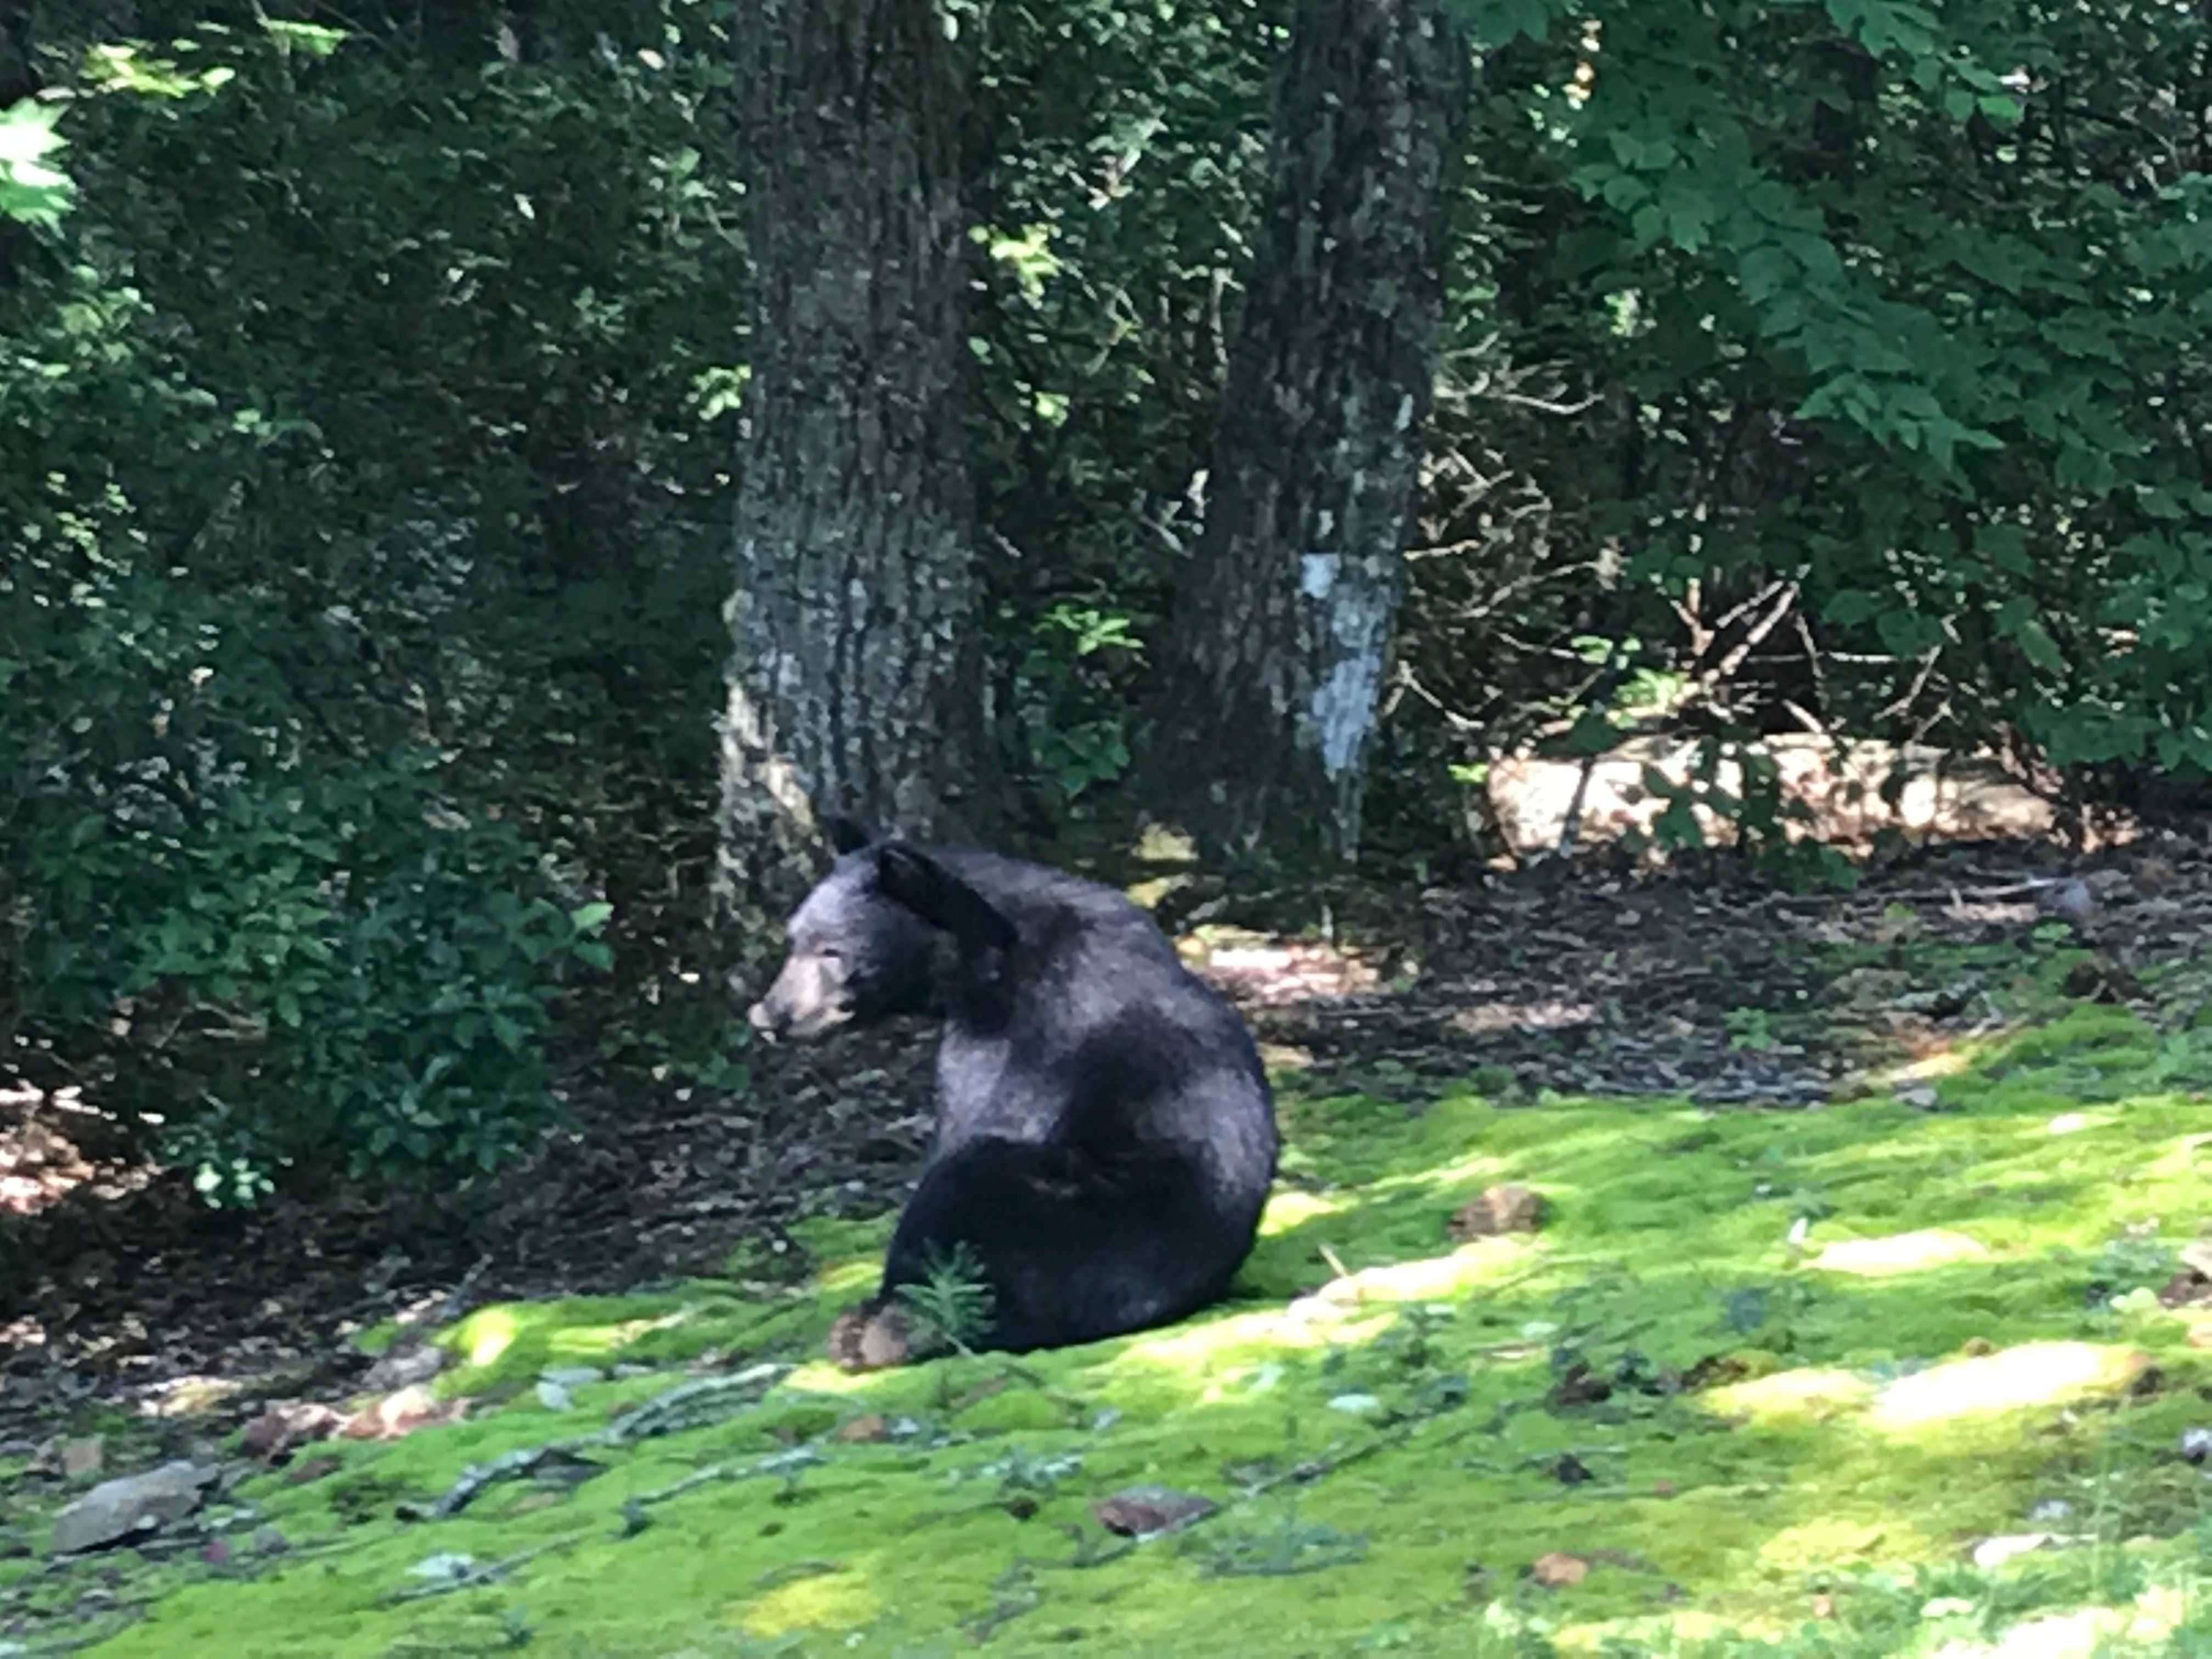 I think this was the bear that was riding the hammock last